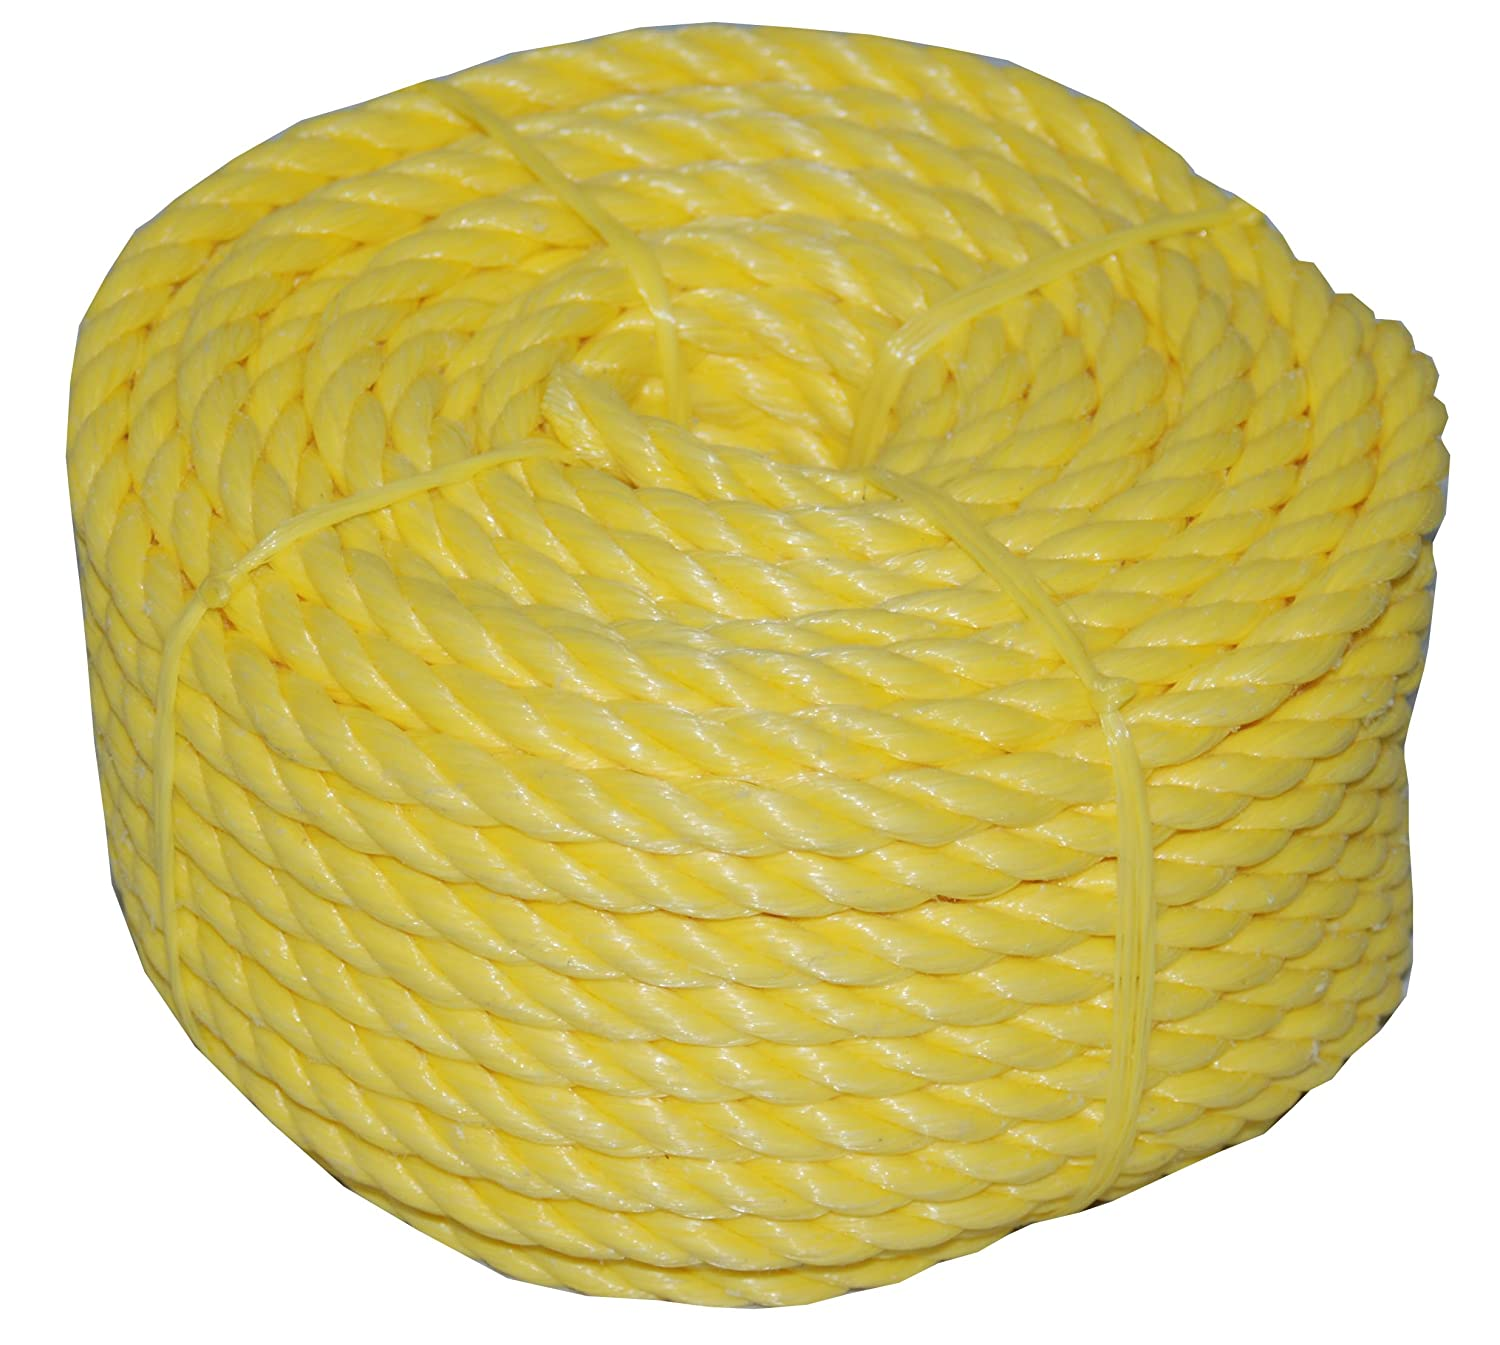 Evans Cordage Co. T.W Evans Cordage 31-063 3//4-Inch by 50-Feet Twisted Yellow Polypro Rope Coilette T.W